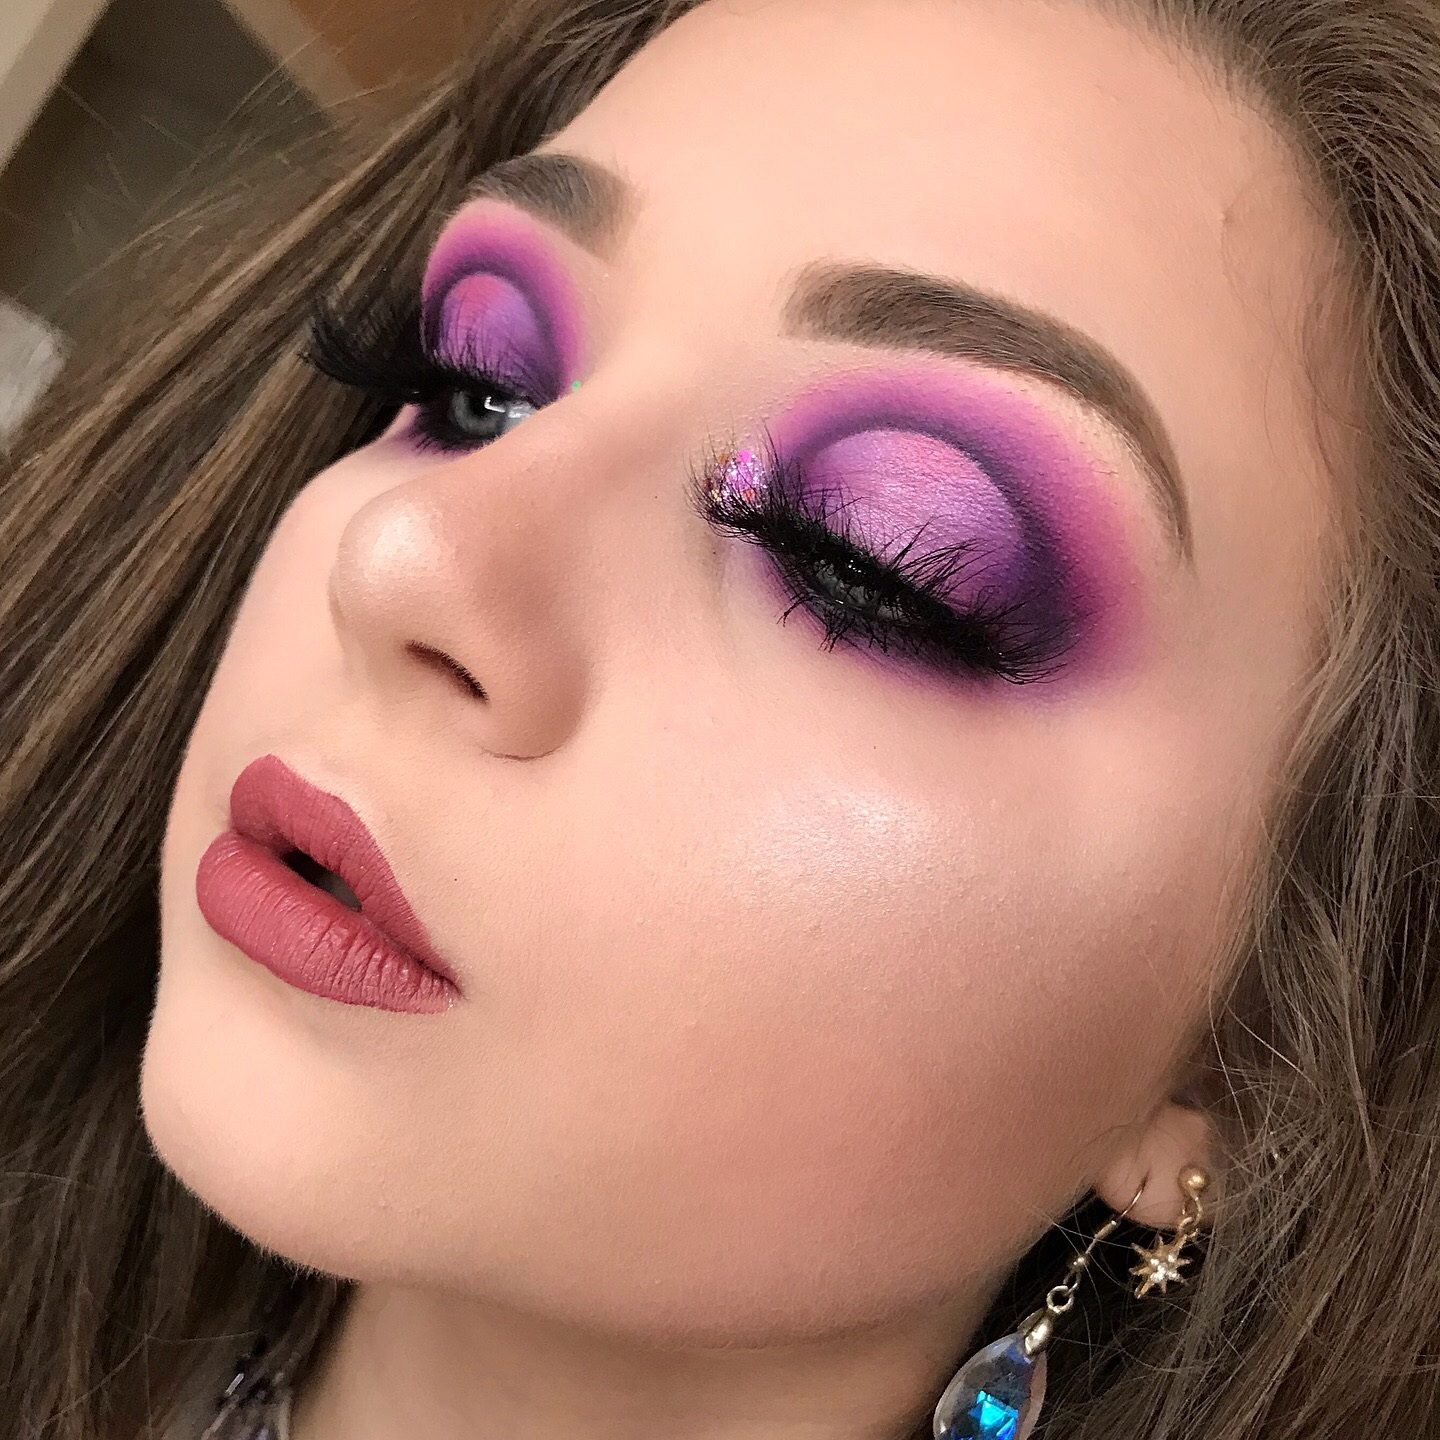 """@embmakeup_ - Discount Code:""""emilyb""""Hi! My name is Emily, and I'm an 18 year old makeup enthusiast from North Carolina! Ever since I was a little girl, I've been around and loved makeup because of my involvement in the performing arts! I am so excited to be able to immerse myself in my passion with the help of Midas Cosmetics!-Emily"""